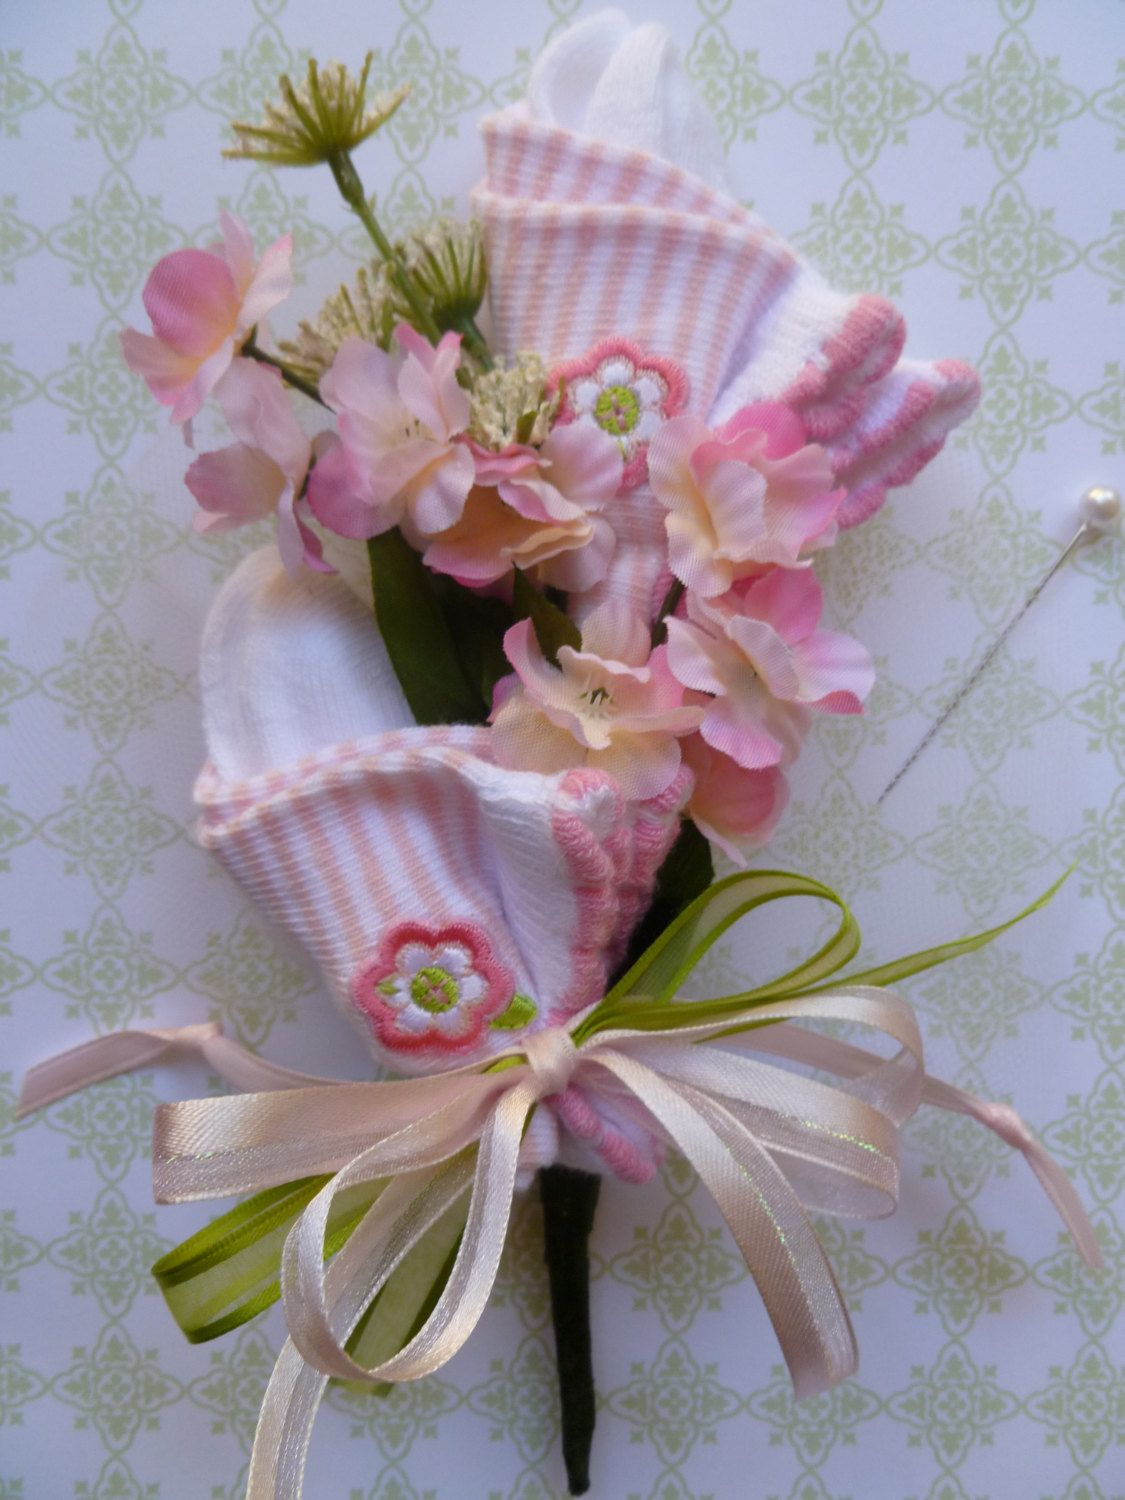 Pin By Erin Hone On Baby Stuff Baby Shower Corsage Baby Girl